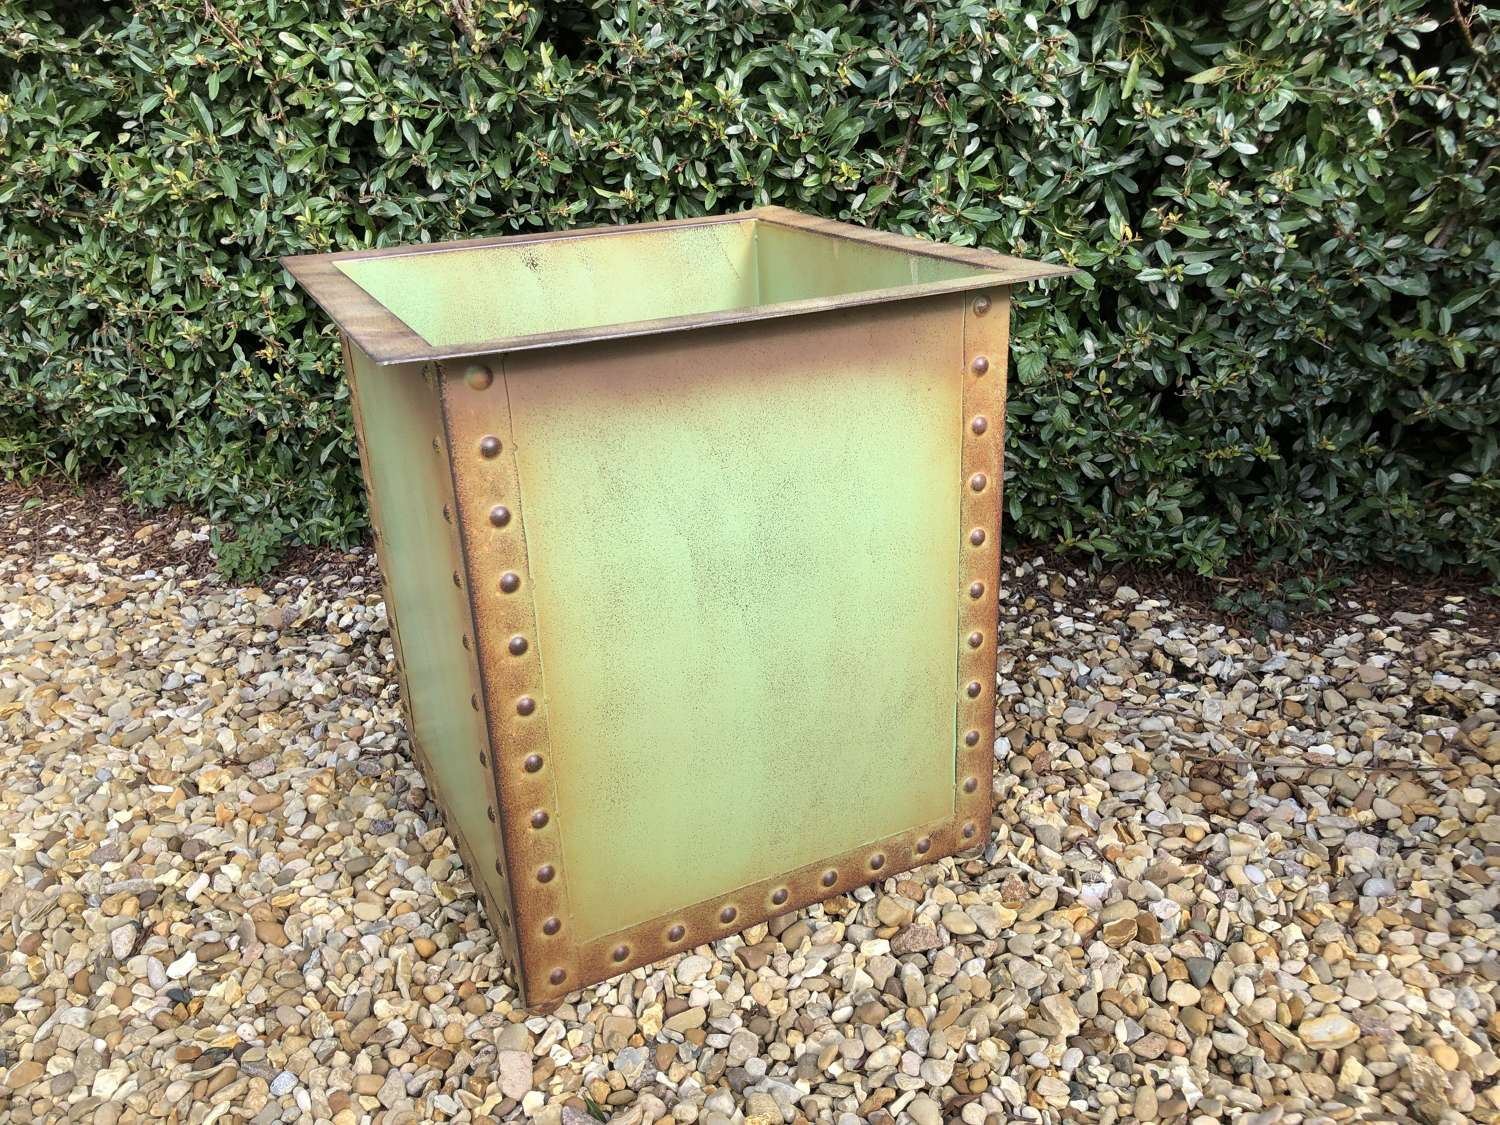 Square Iron Riveted Planters - Iron Tubs - Riveted Planters Green